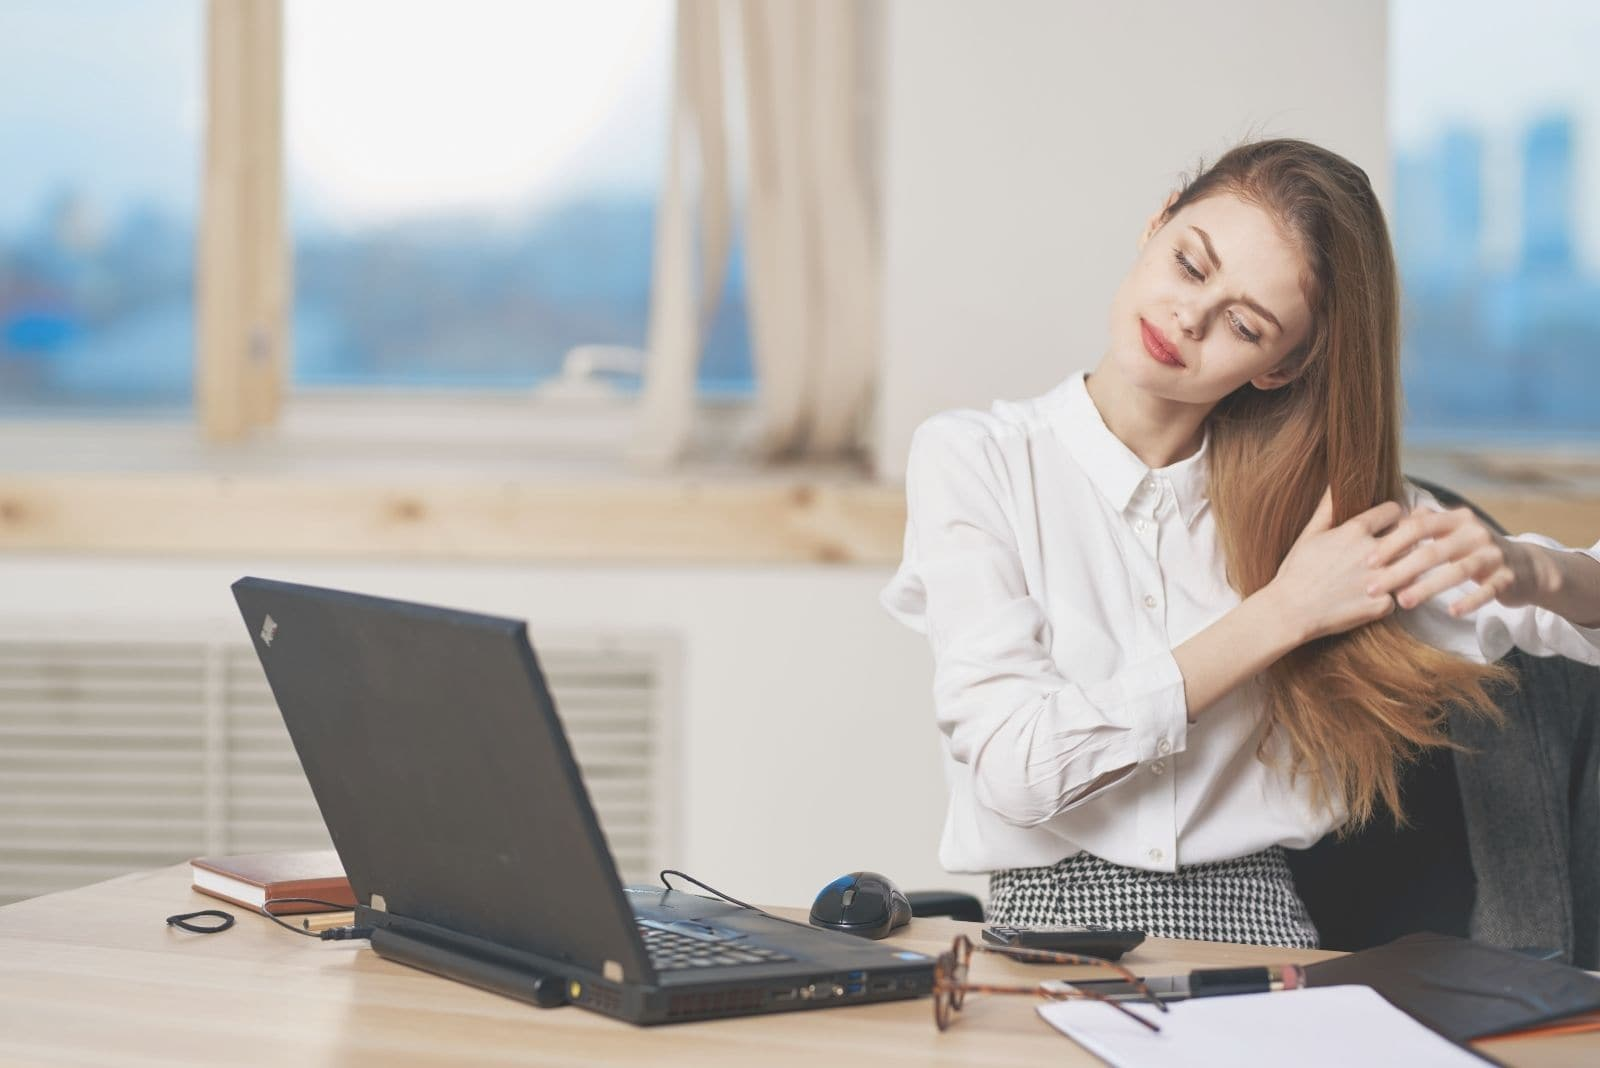 office female worker fixing her hair while working in the office